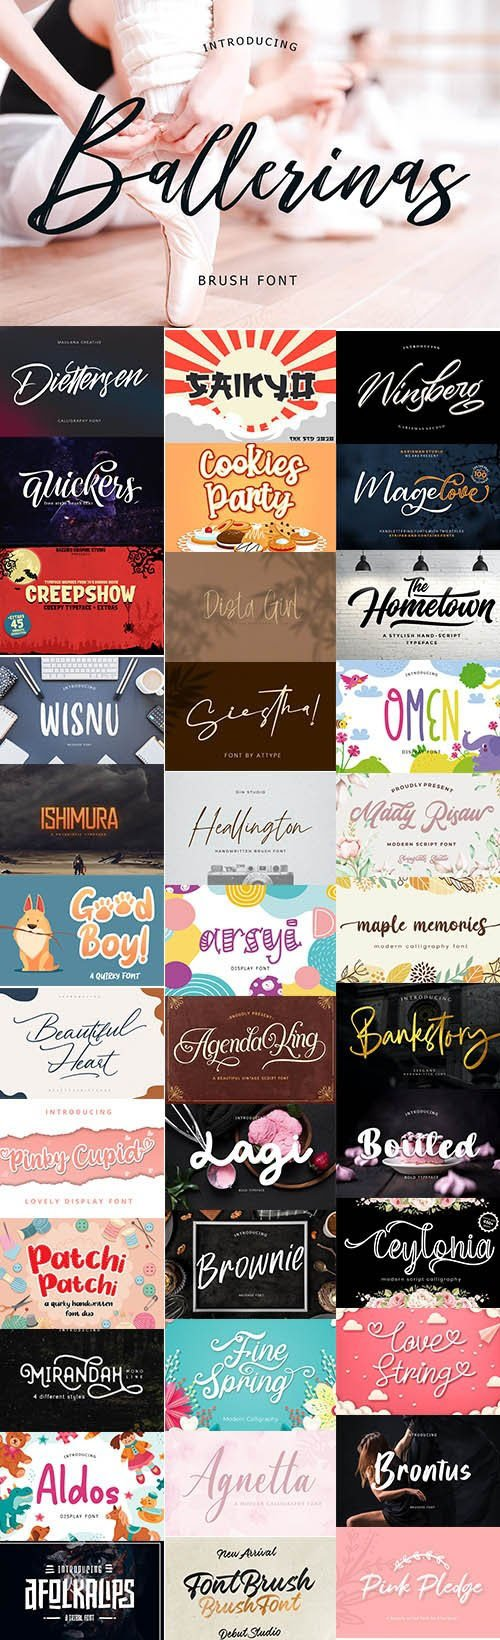 37 Super Creative Fresh Fonts